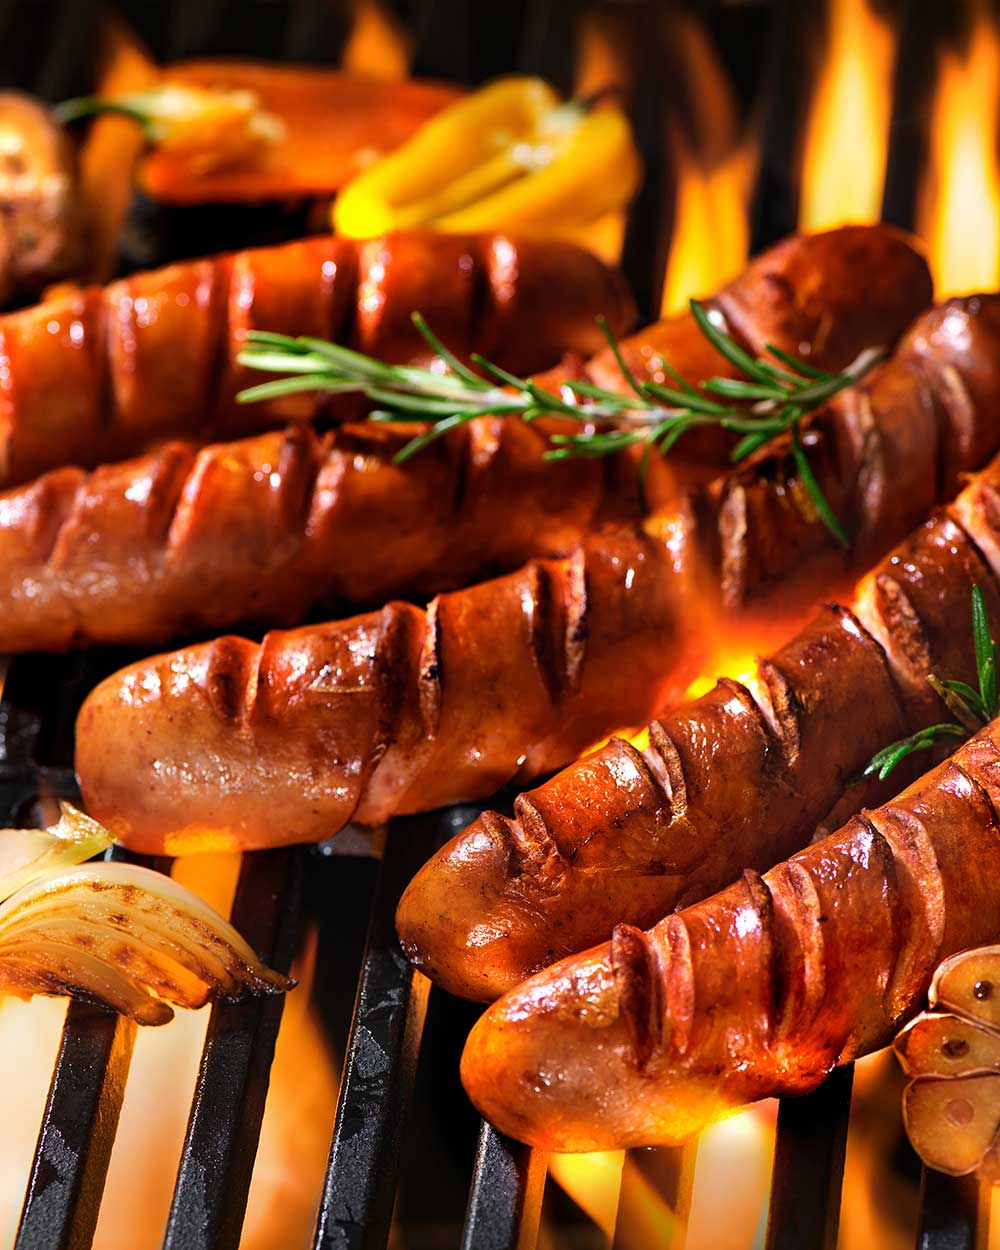 Grilled Brats with German Potato Salad